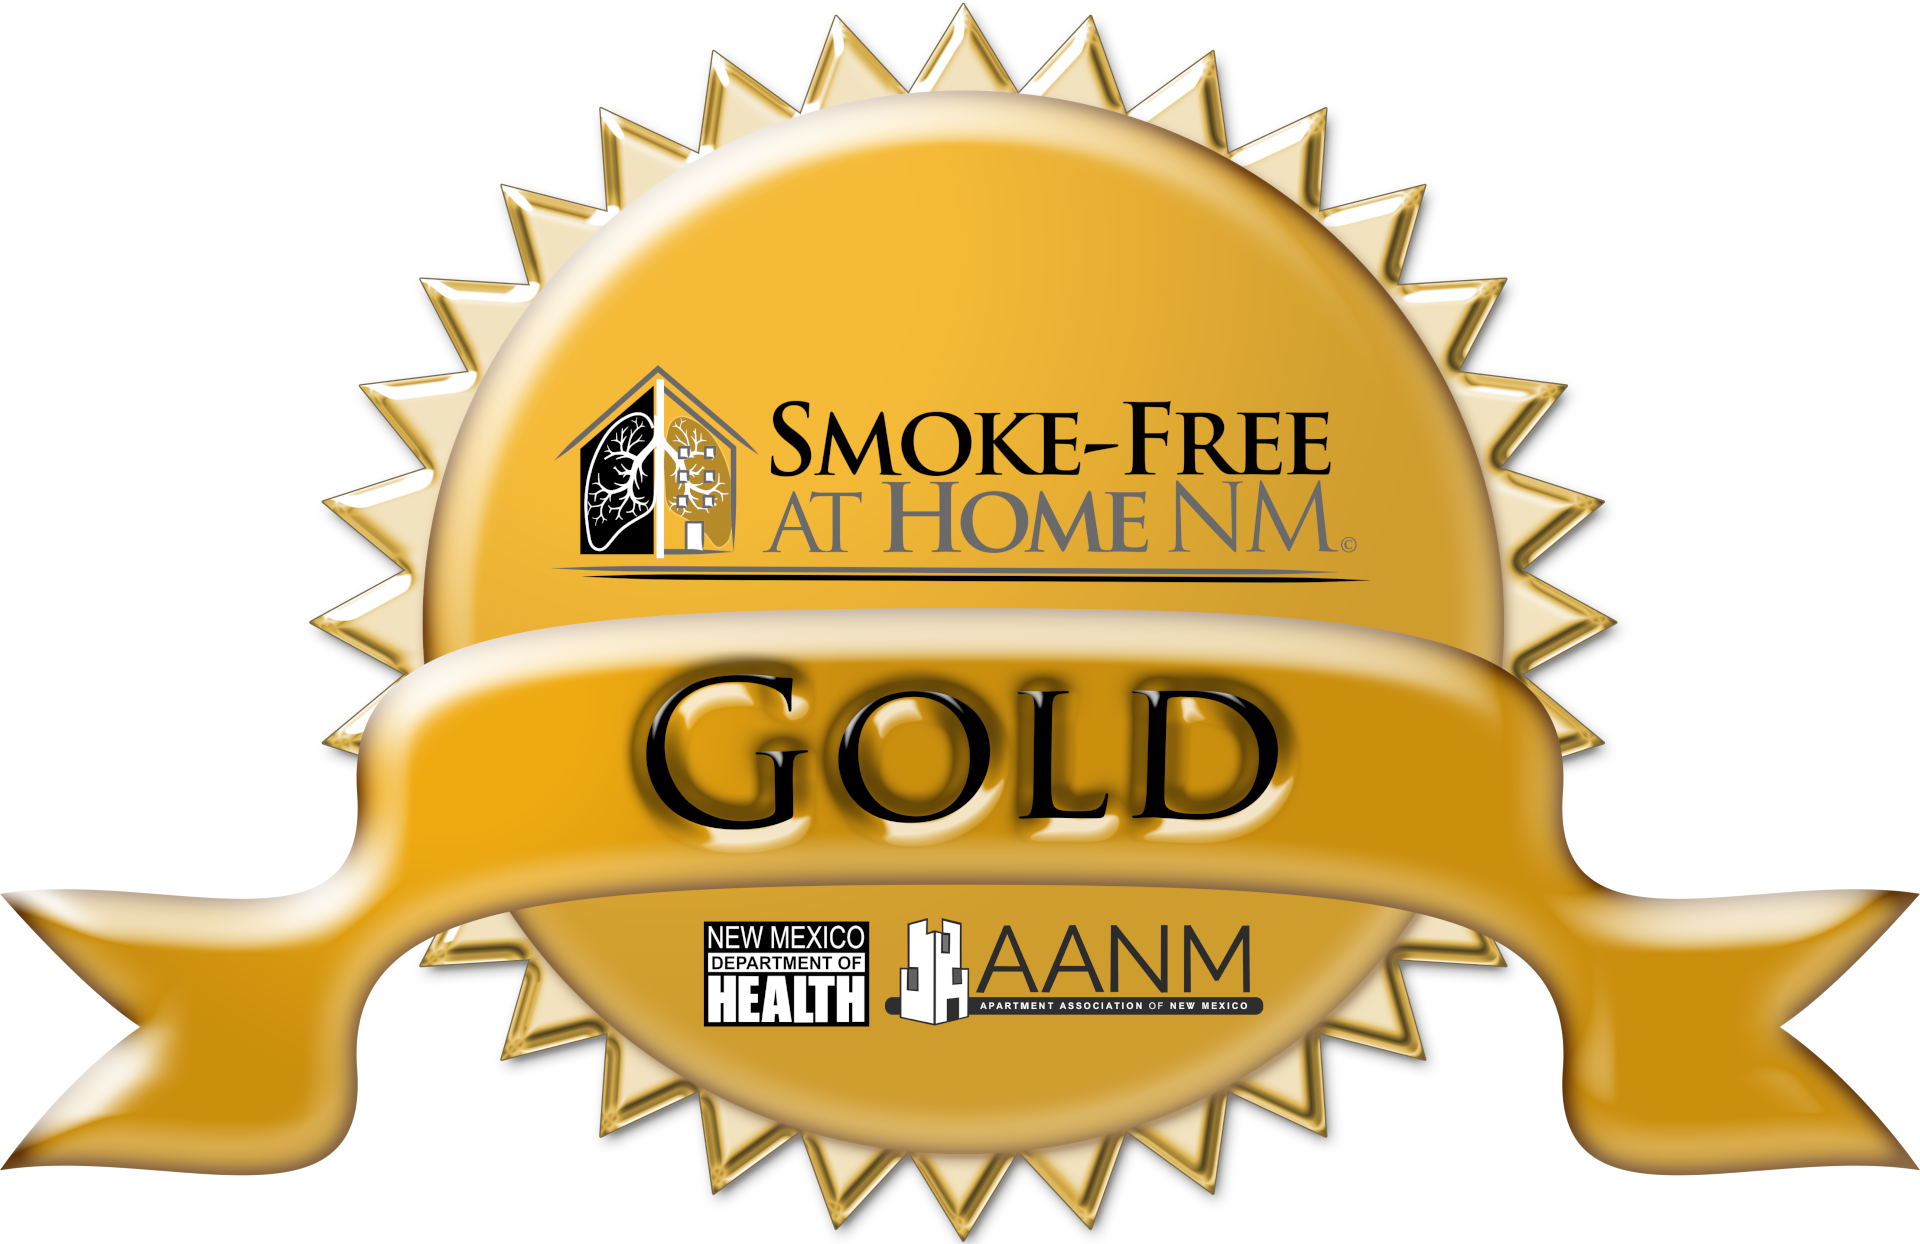 Gold: An Existing Property that does not allow any smoking, including electronic cigarettes, on any part of the property at any time.